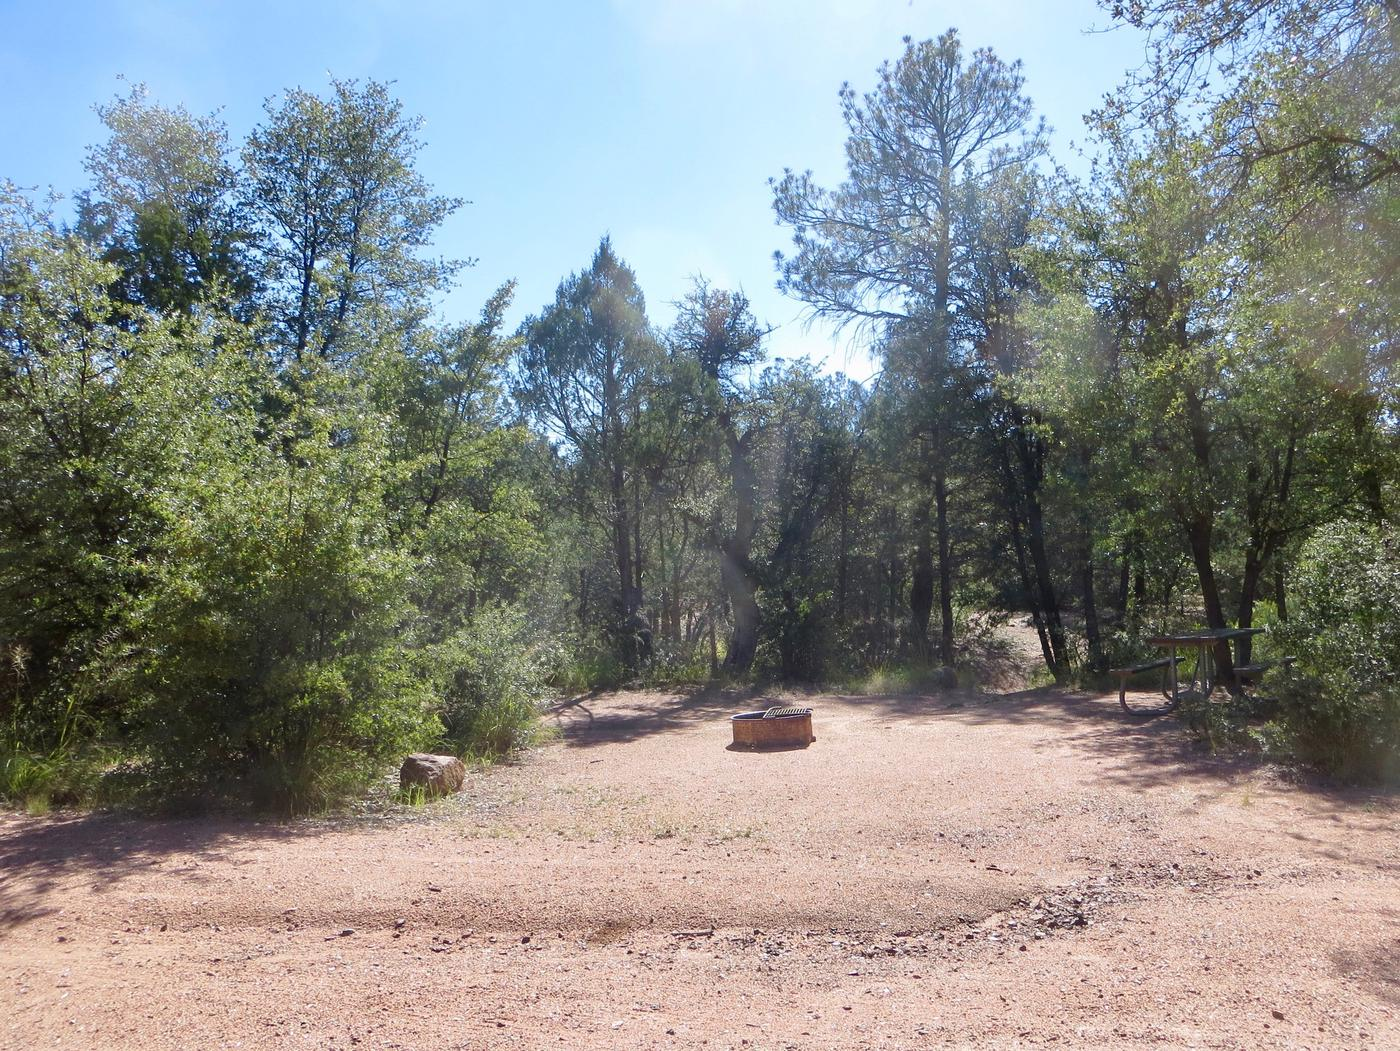 Houston Mesa, Horse Camp site #05 featuring entrance, parking, and picnic area.